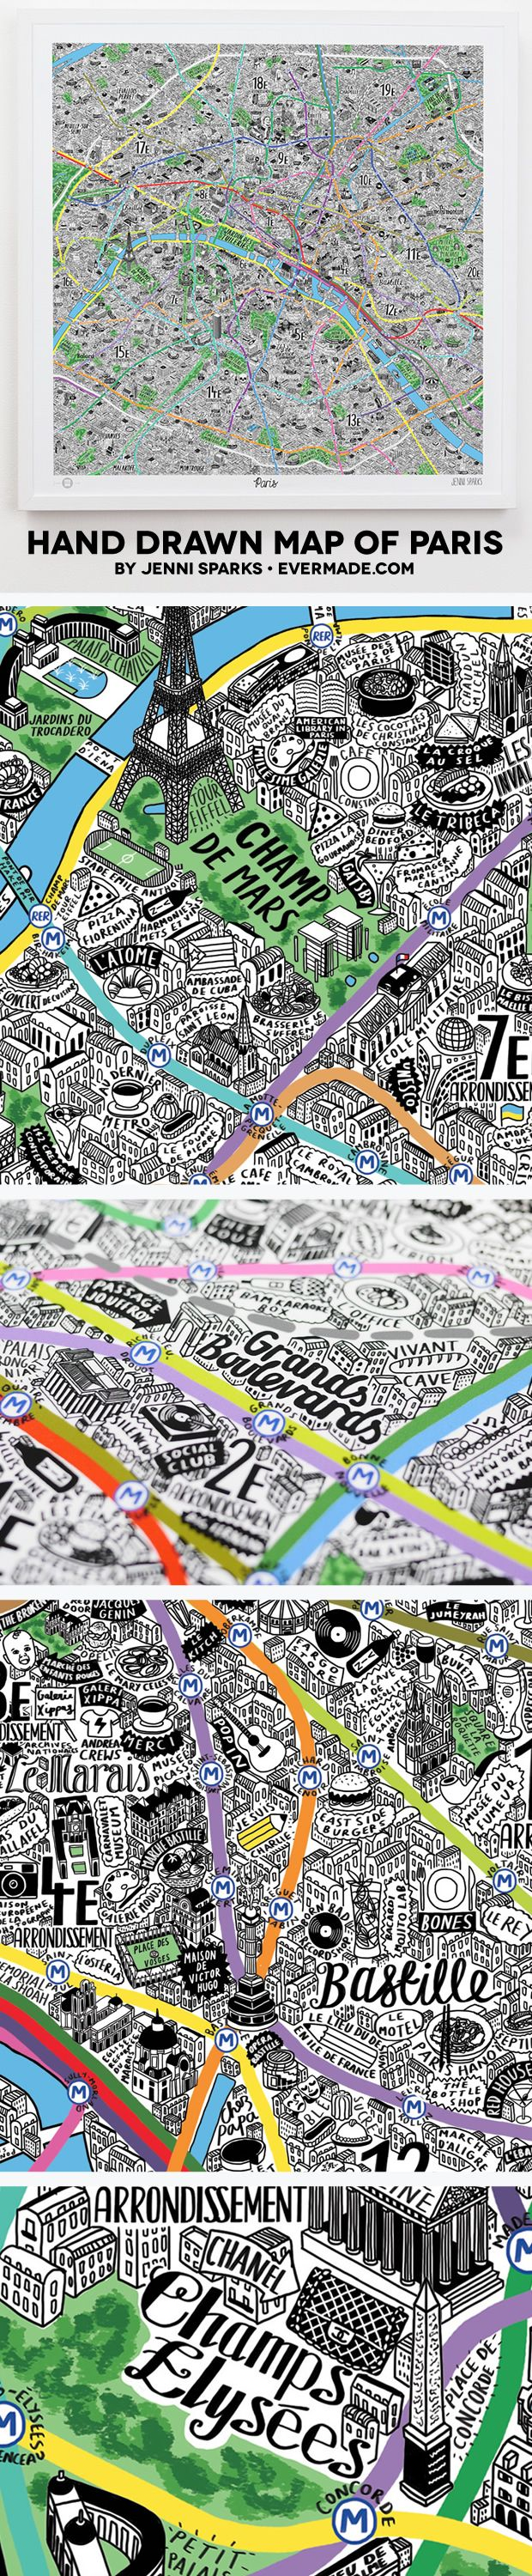 Hand Drawn Map of Paris from Evermade.com